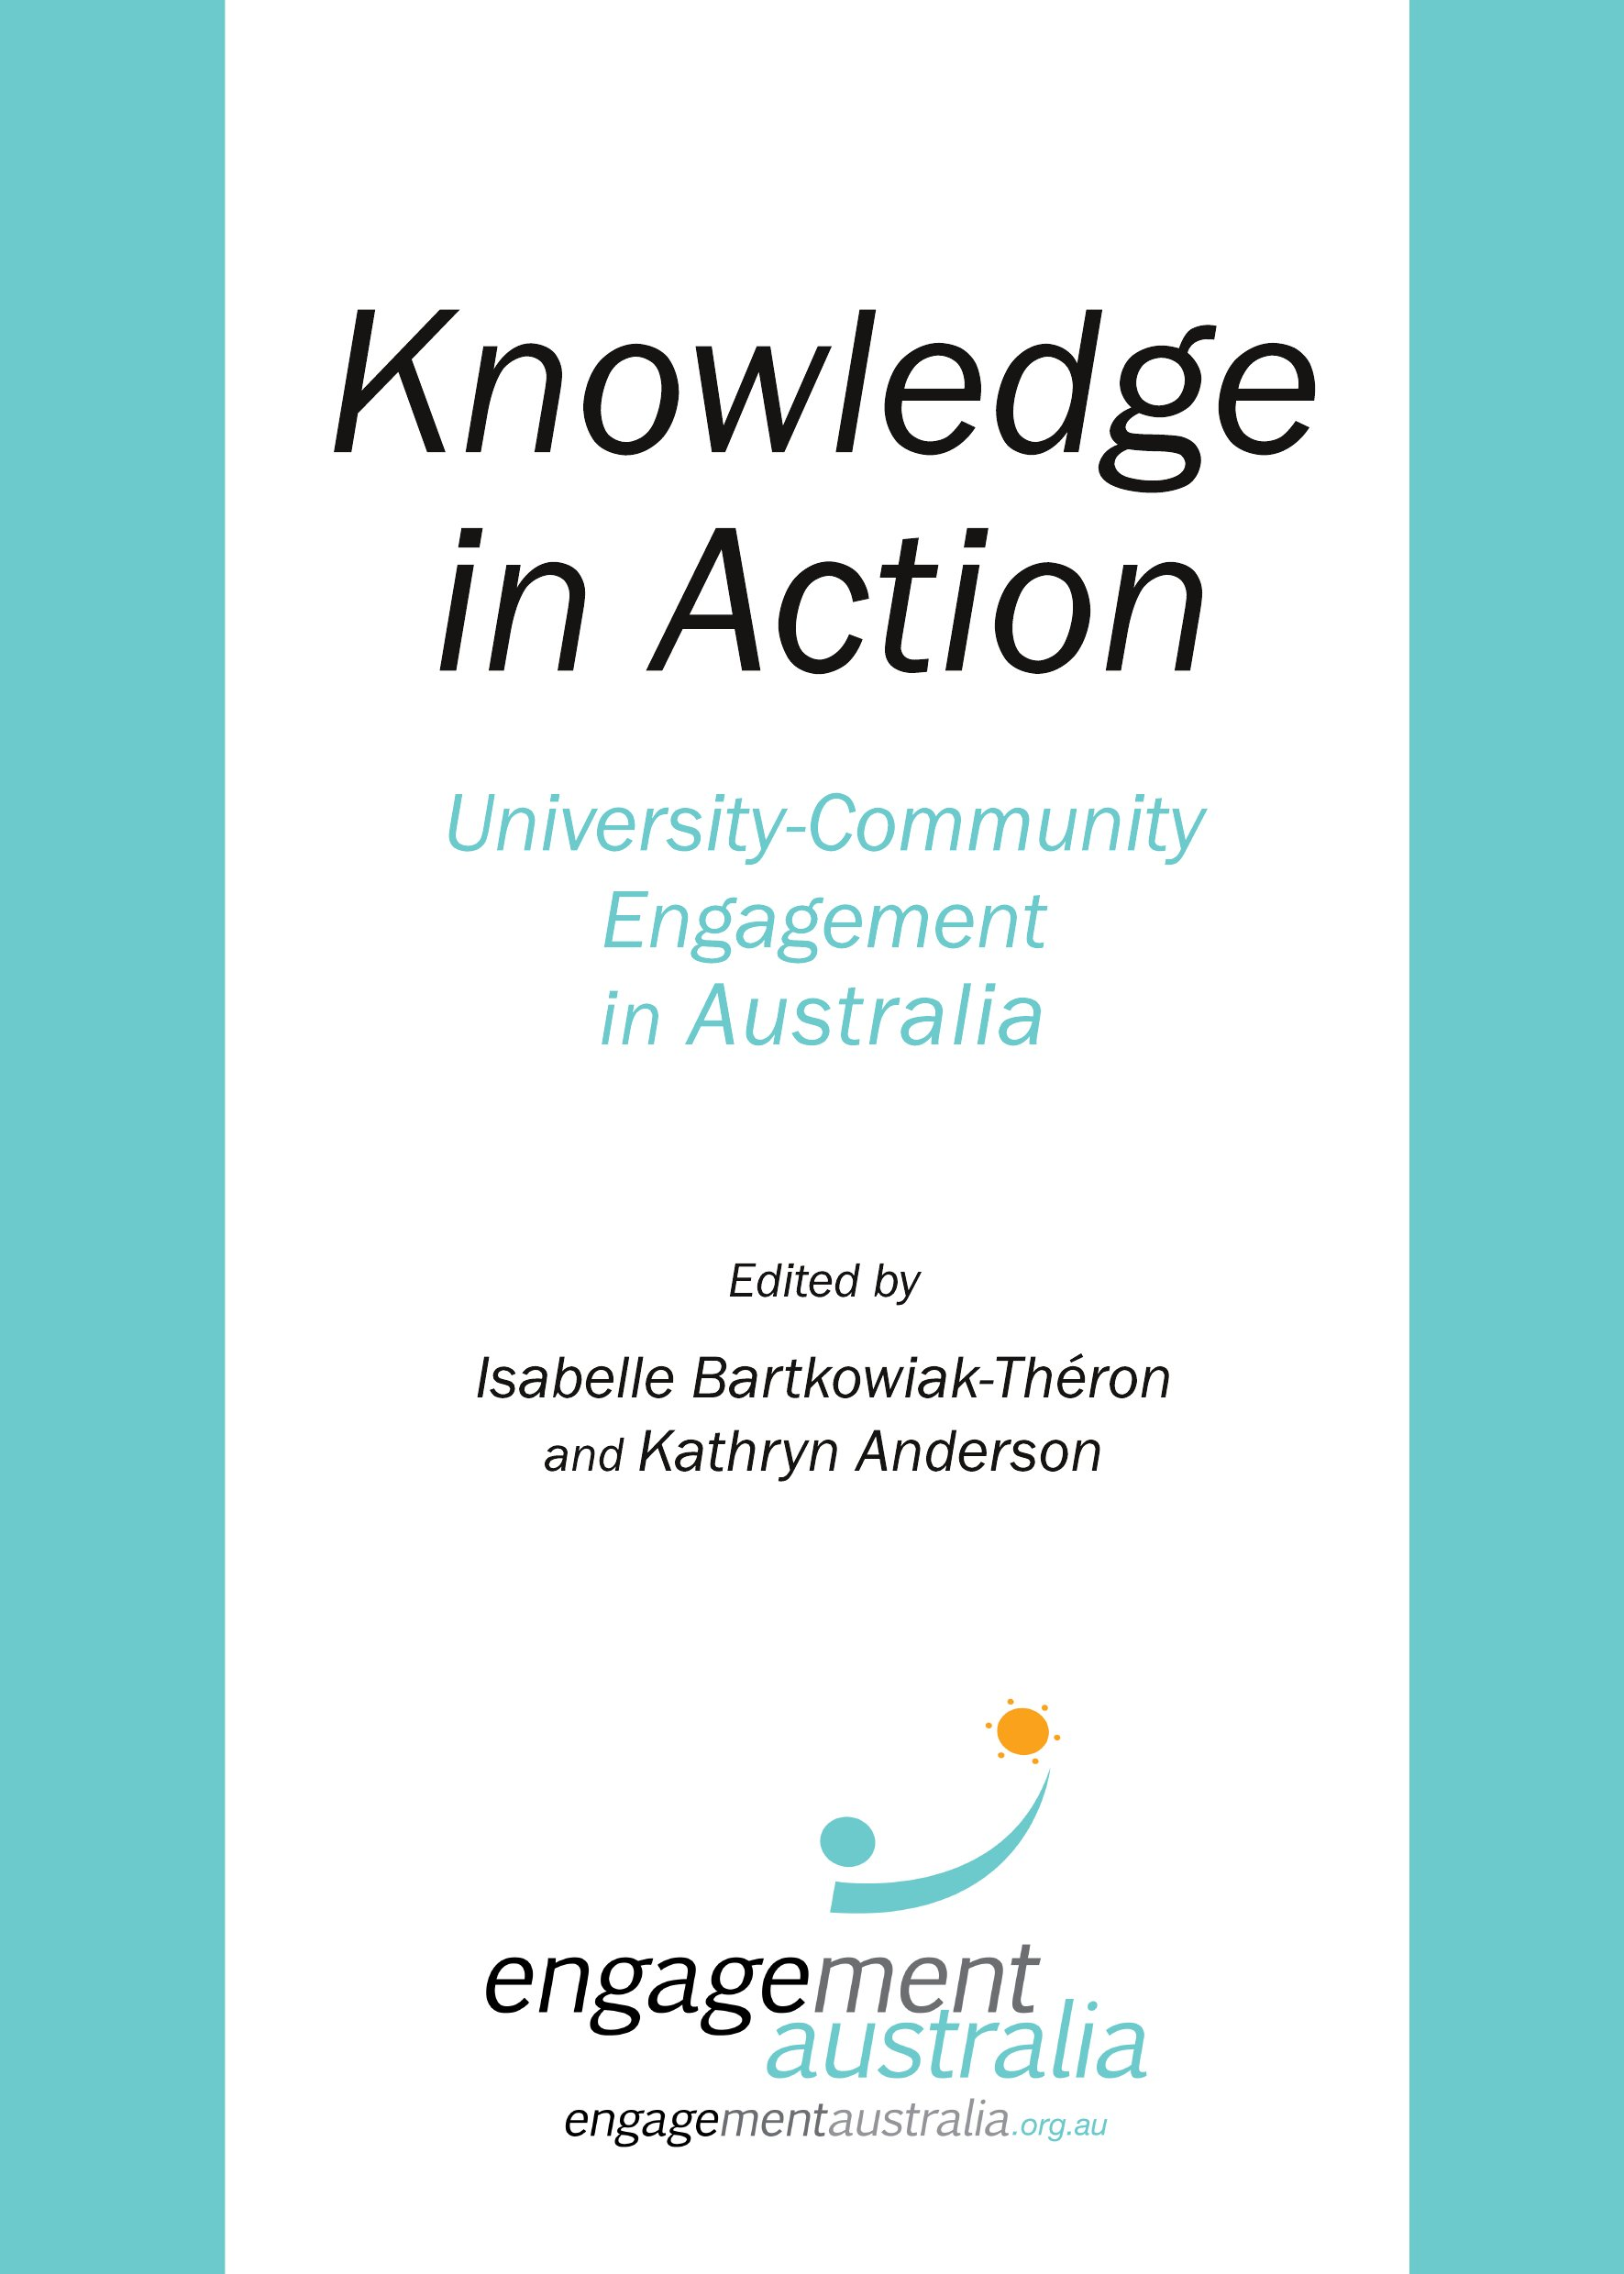 Knowledge in Action: University-Community Engagement in Australia